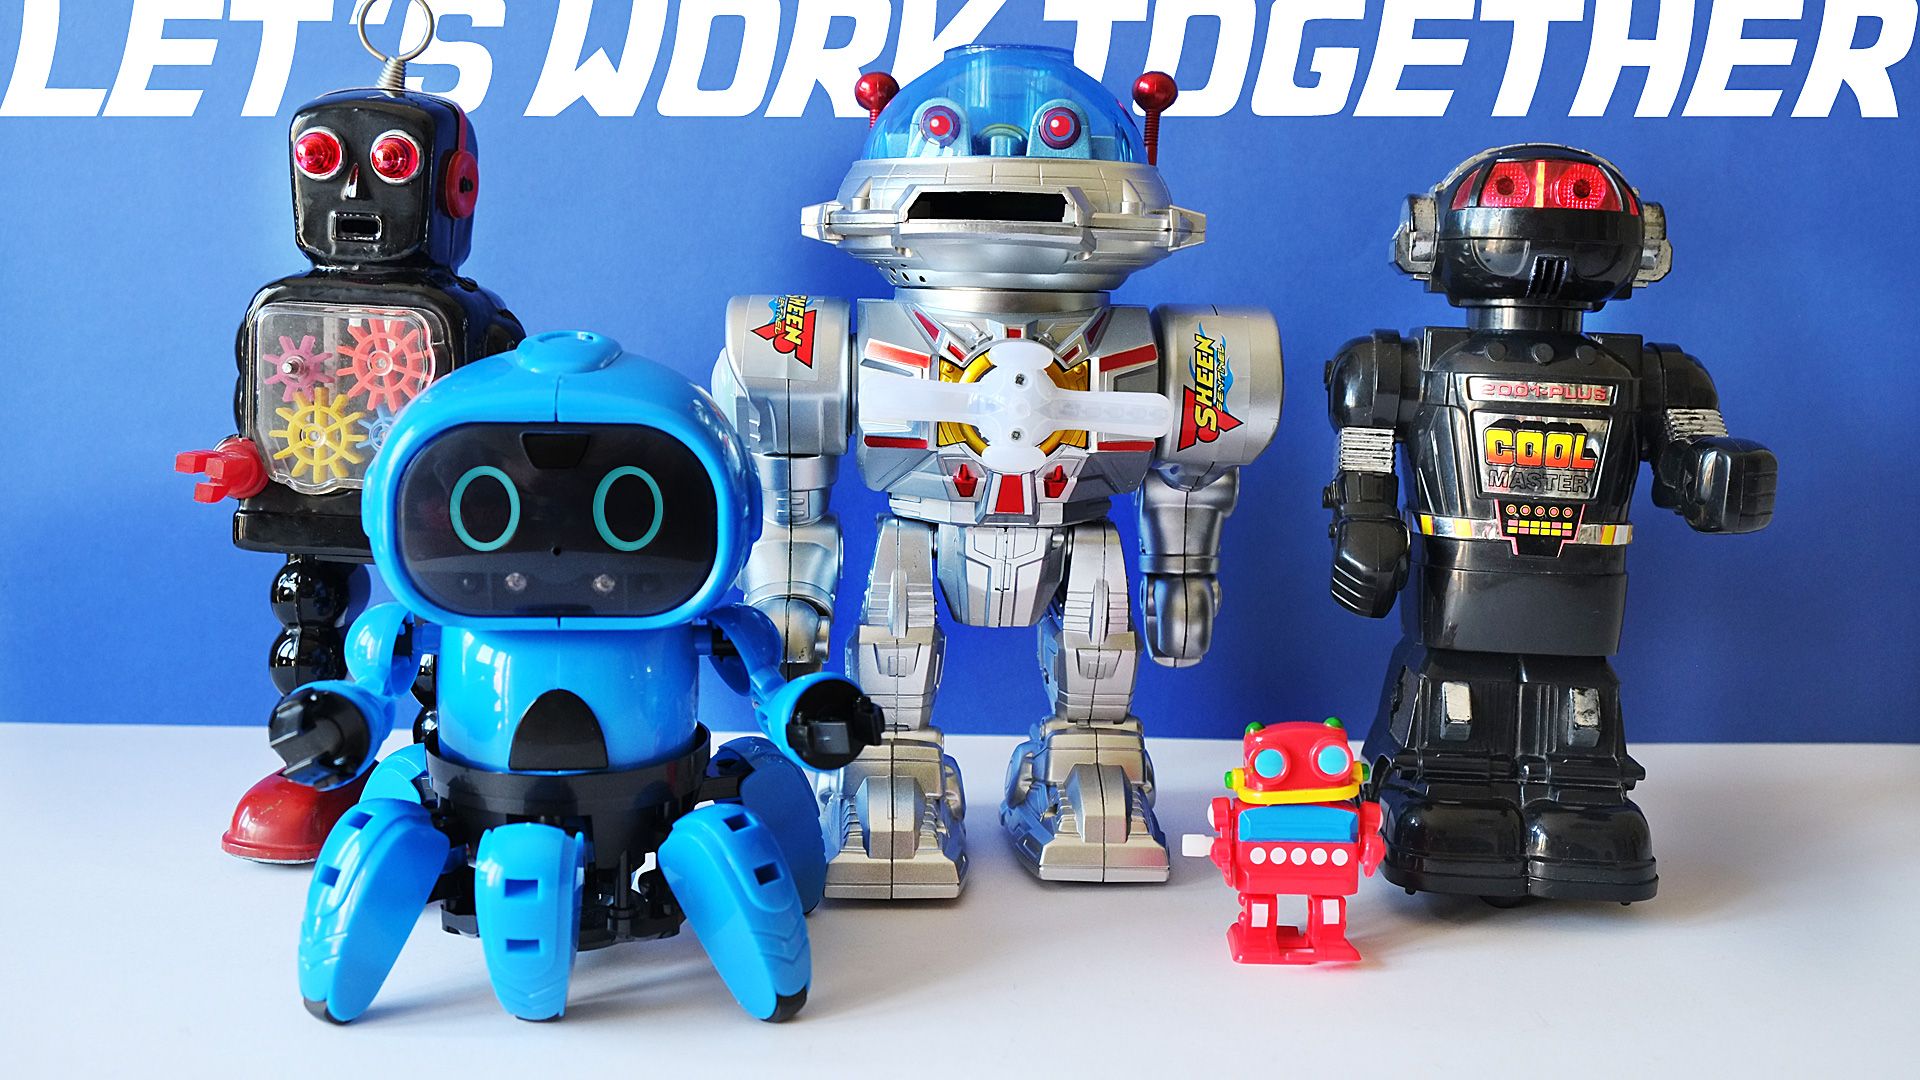 5 ROBOTS Work Together - United as they defend planet Earth